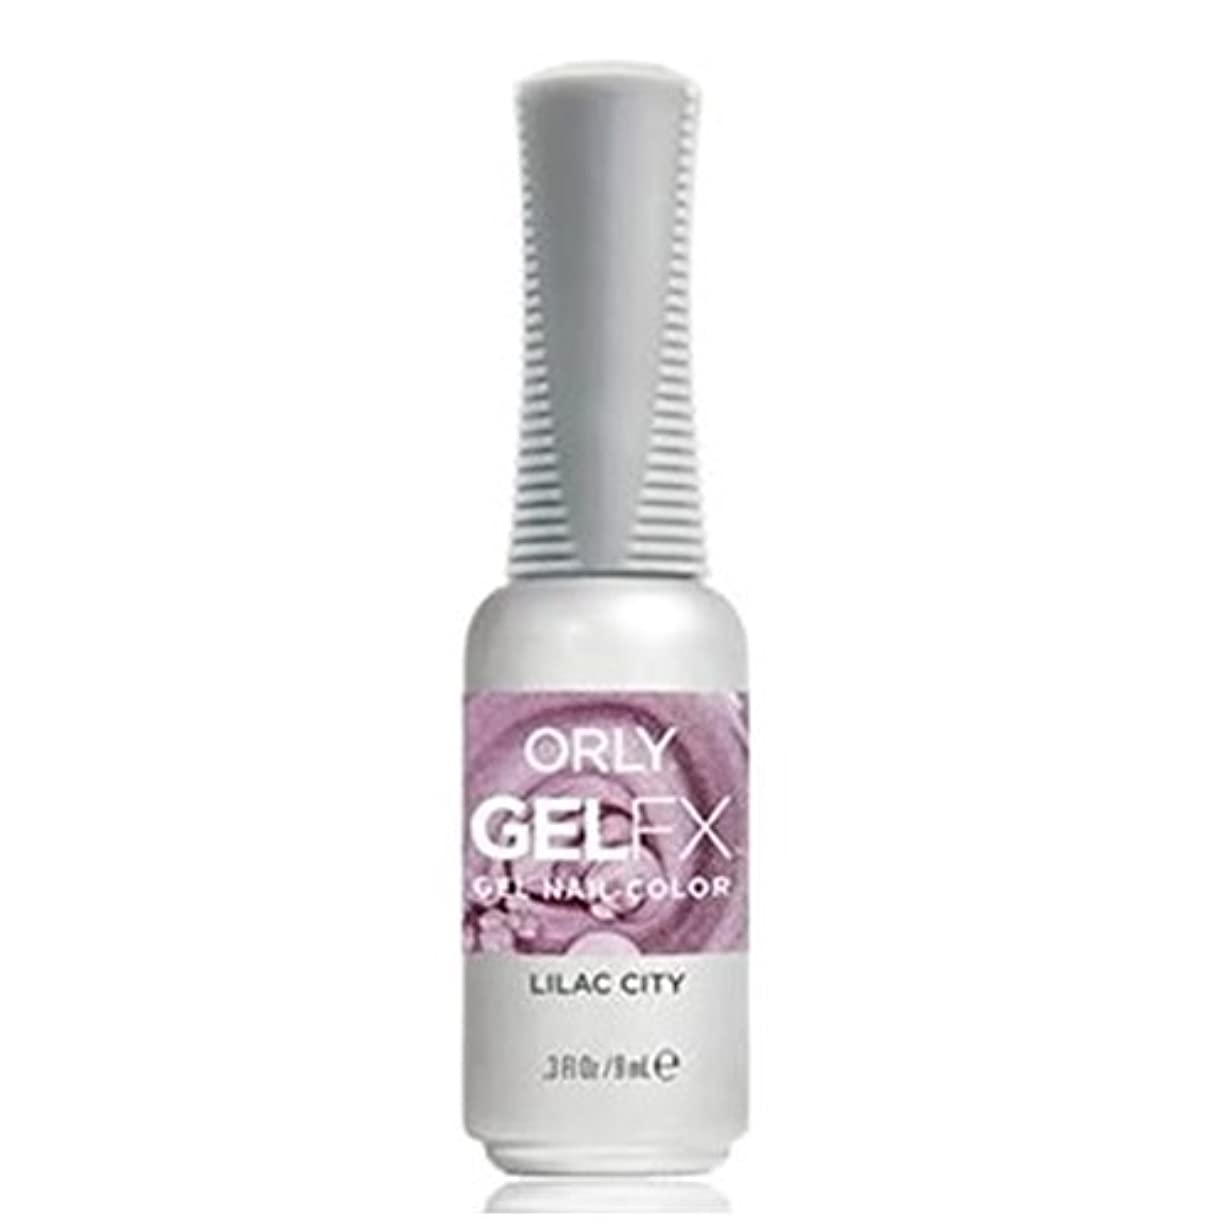 バイソンマルクス主義者退院Orly Gel FX - Pastel City Collection Spring 2018 - Lilac City - 0.3 oz / 9 mL